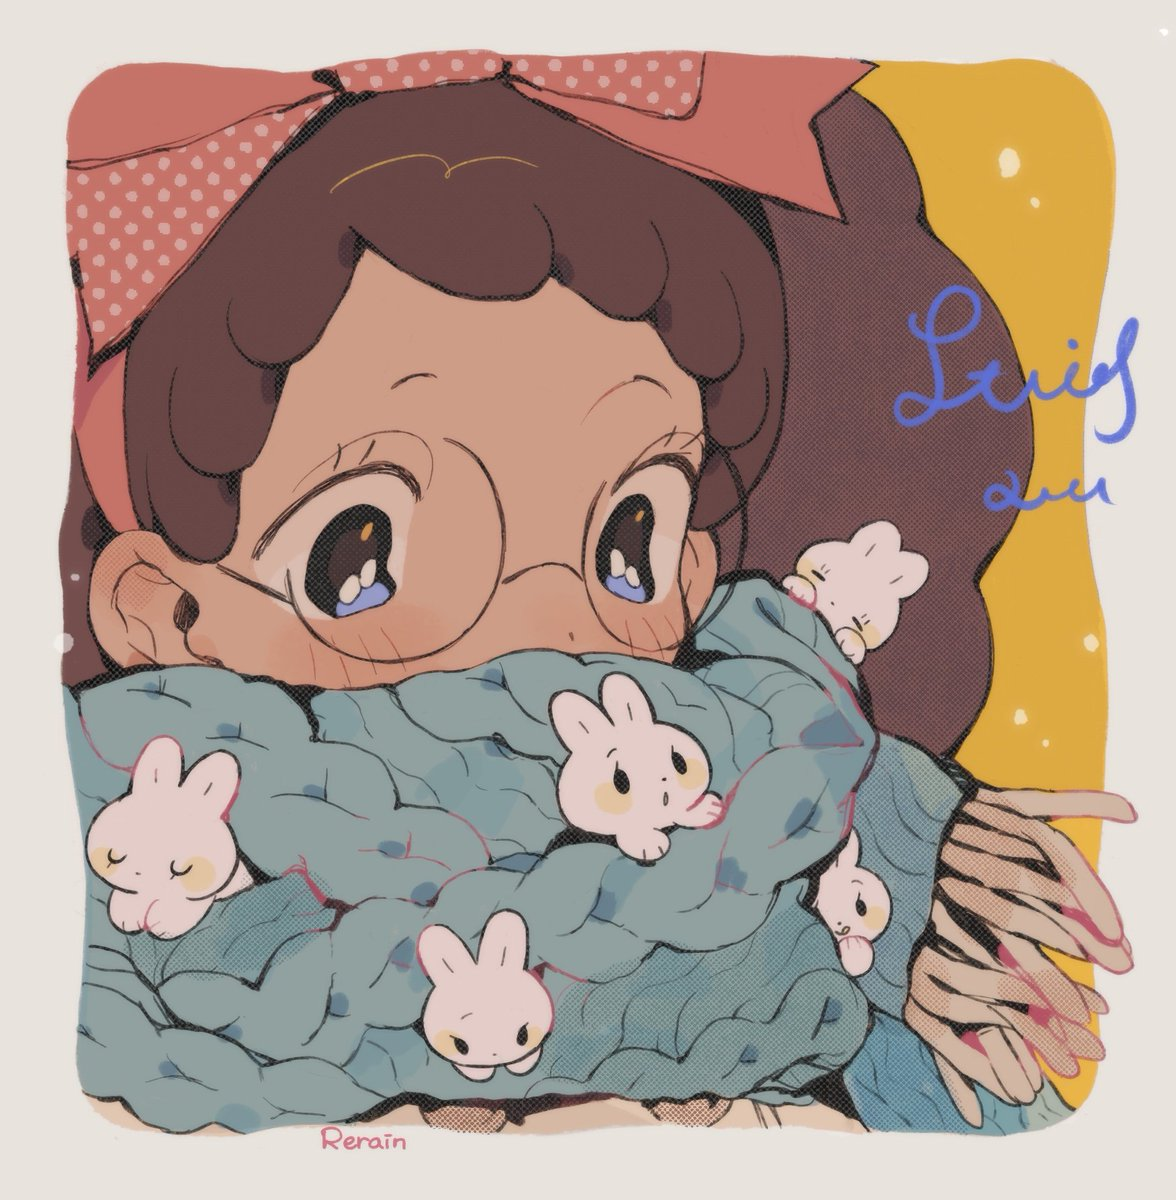 Bunnies hiding in the scarf ❄️